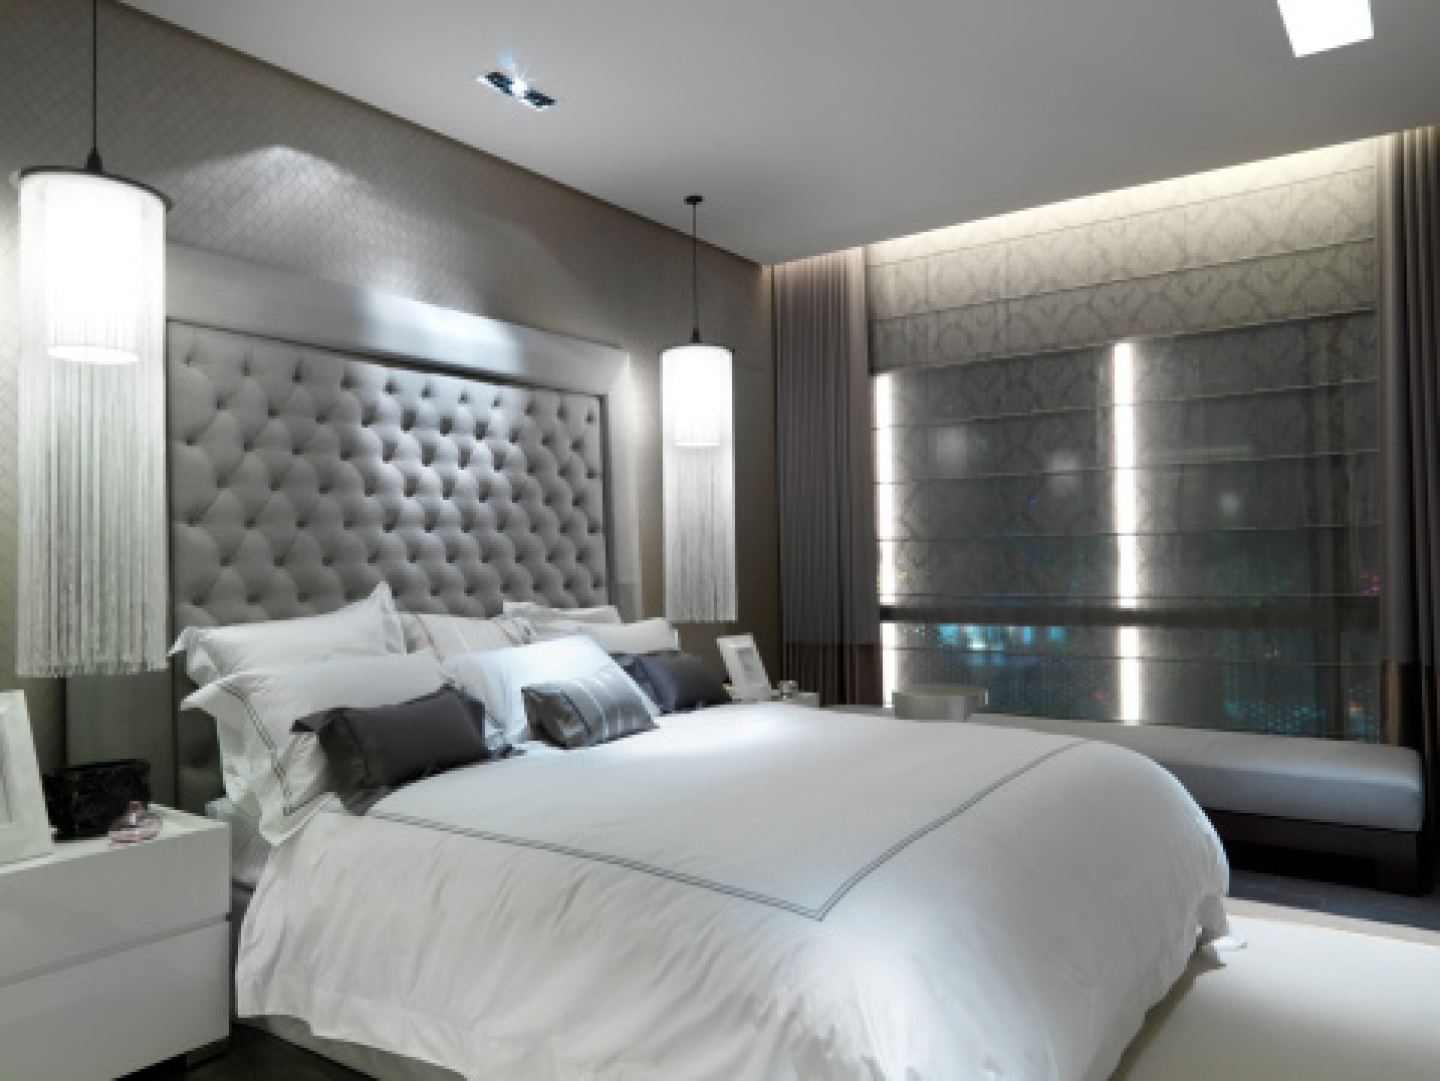 Gallery Of Bedroom Designs Men Home Design Ideas Modern Male Bedroom Designs  With Cool Room Designs For Men. Part 61